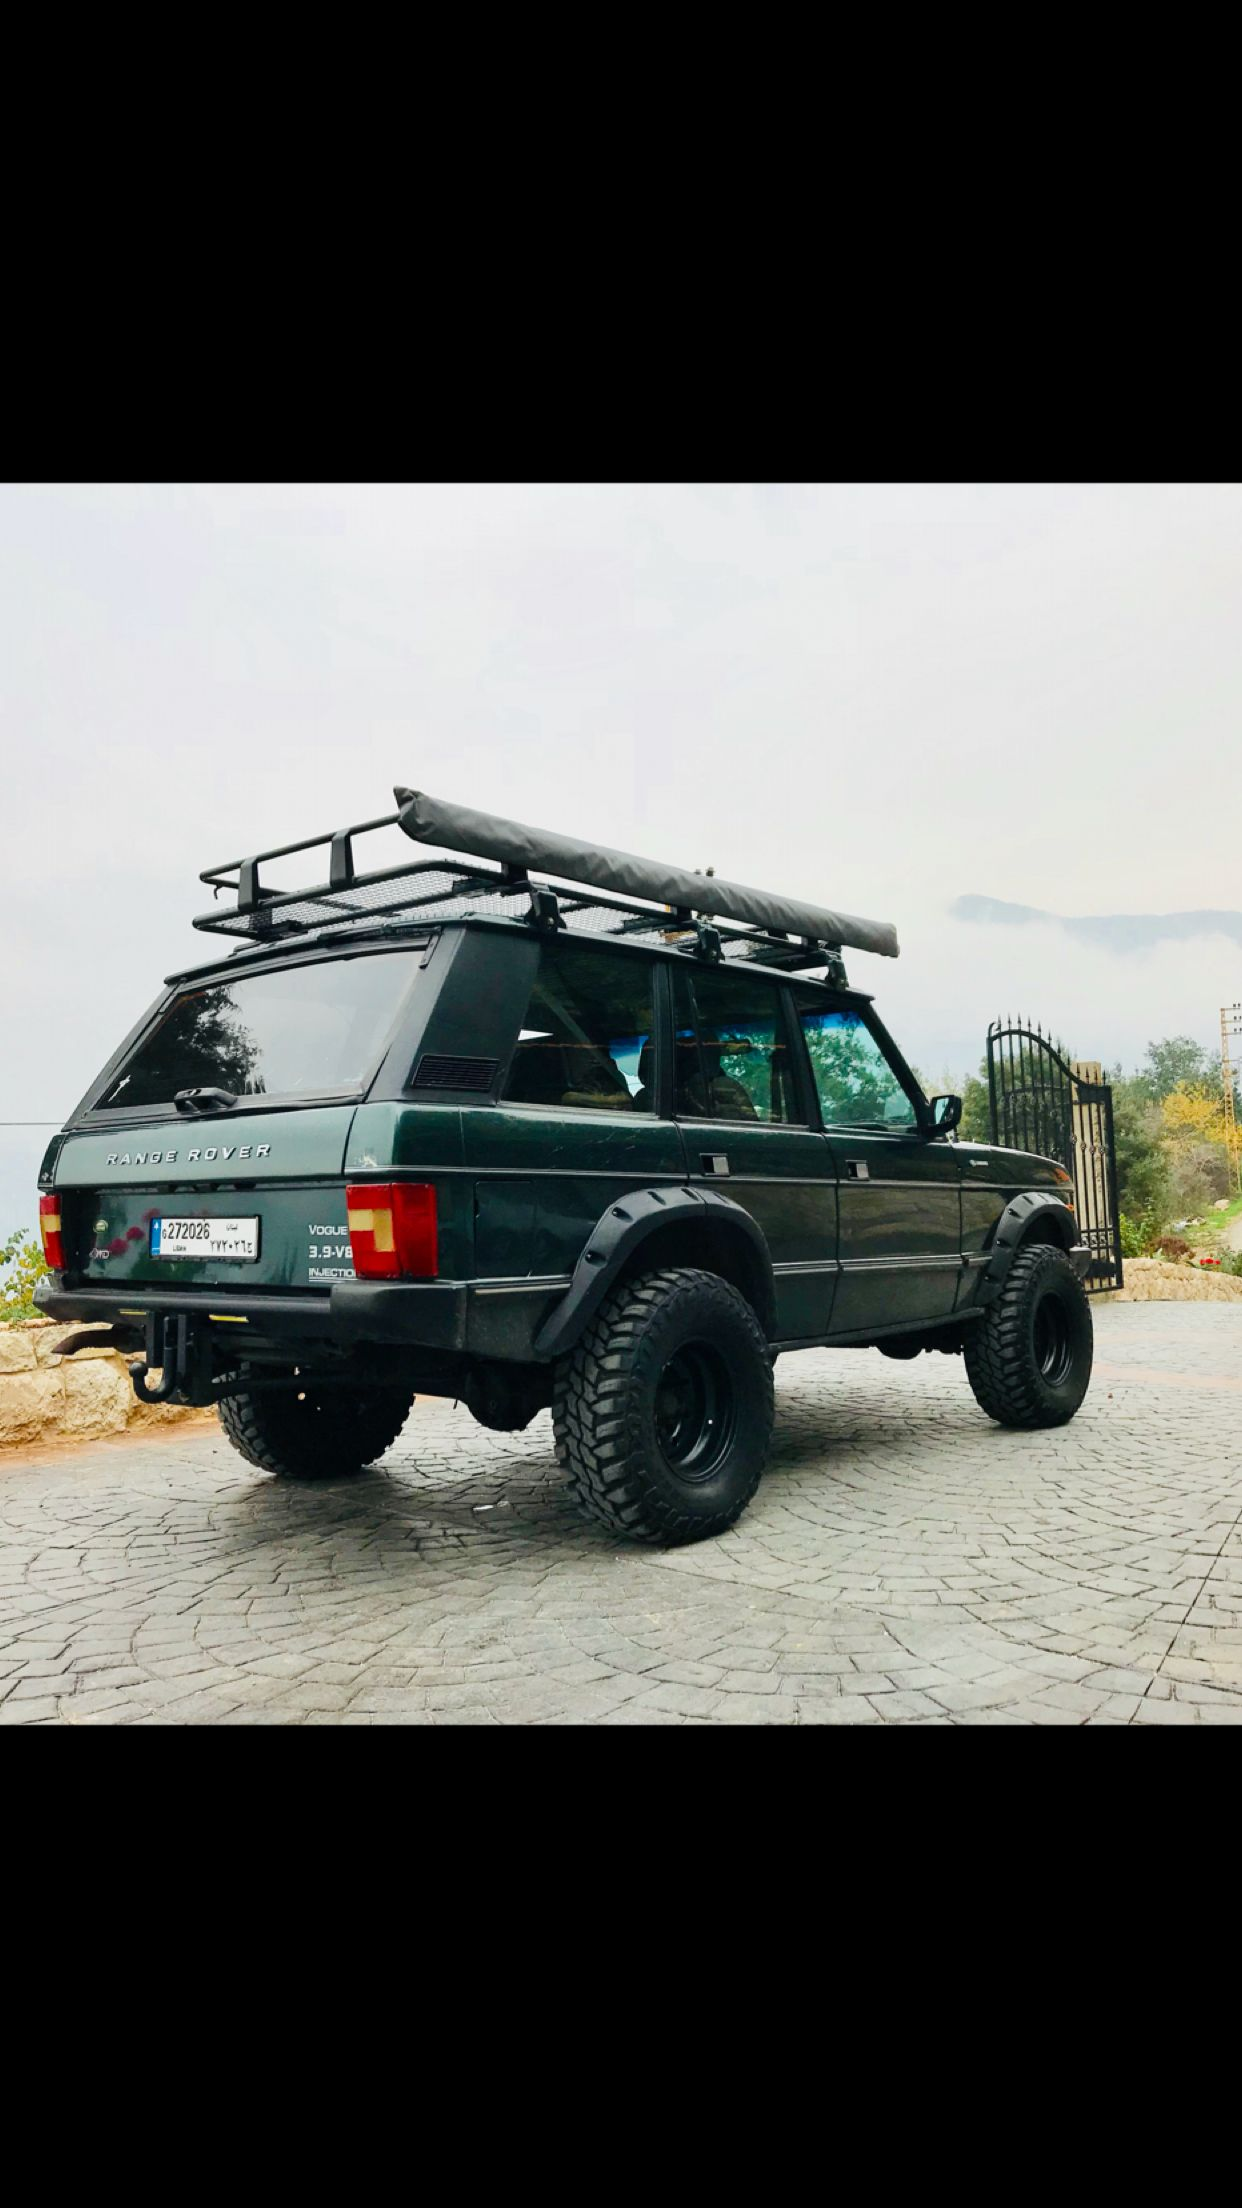 Pin by Pete Ellingson on Rover Range rover classic, Land